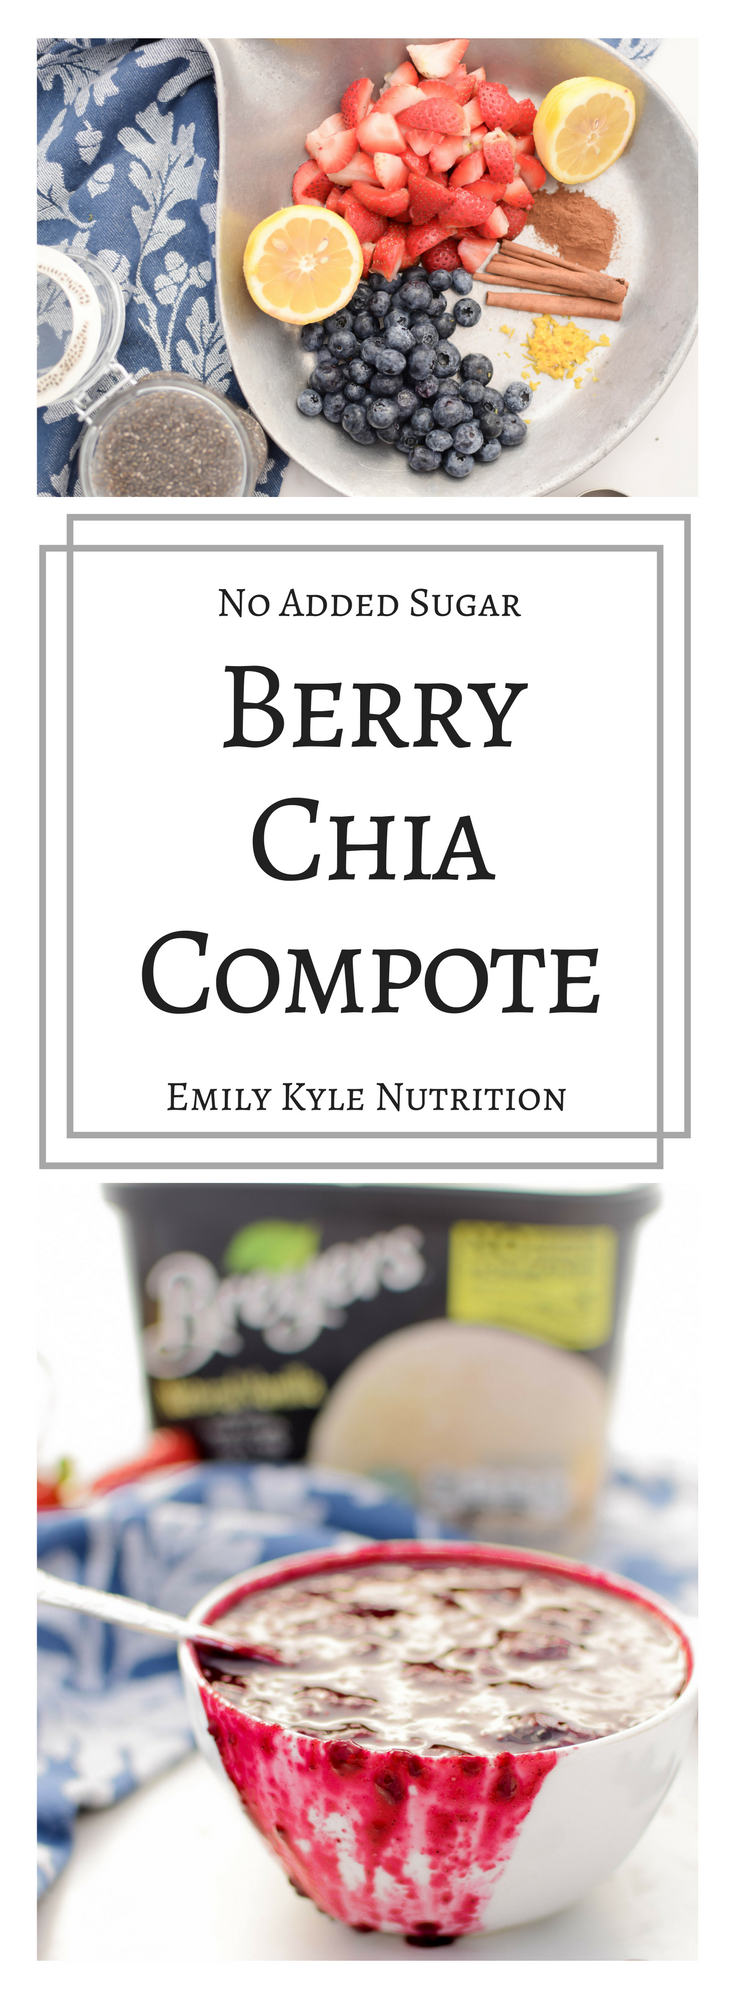 Make your own no-added-sugar Berry Chia Compote with just a few simple ingredients to enjoy with all of your favorite treats like yogurt, oatmeal, or ice cream! | #proundpartner of Breyers Natural Vanilla Ice Cream